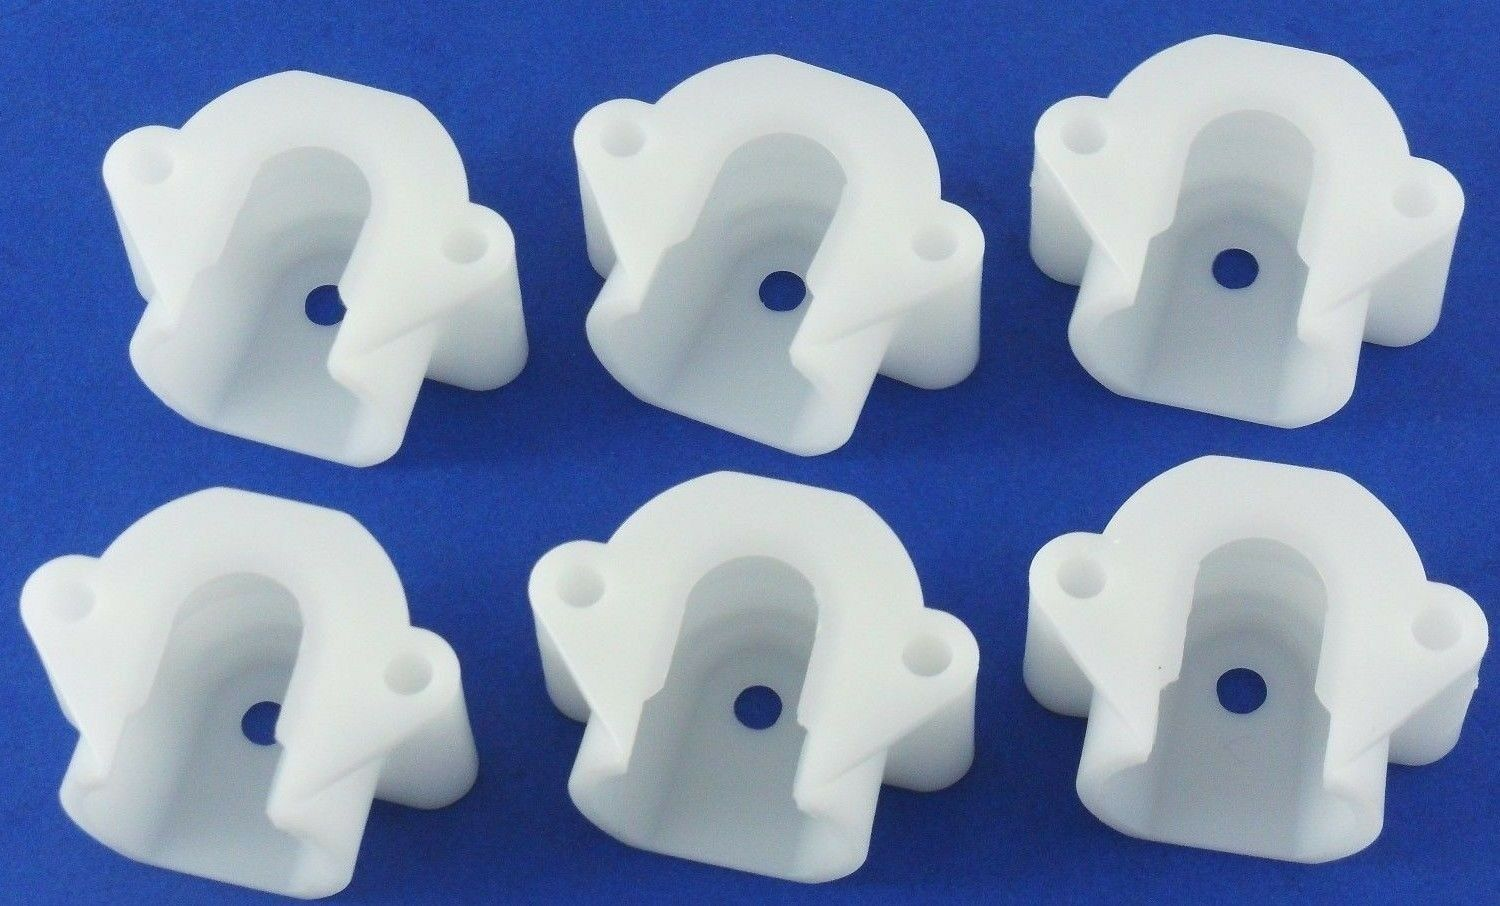 131825900 Dryer Drum Rear Bearing Support Cup 6 Pack